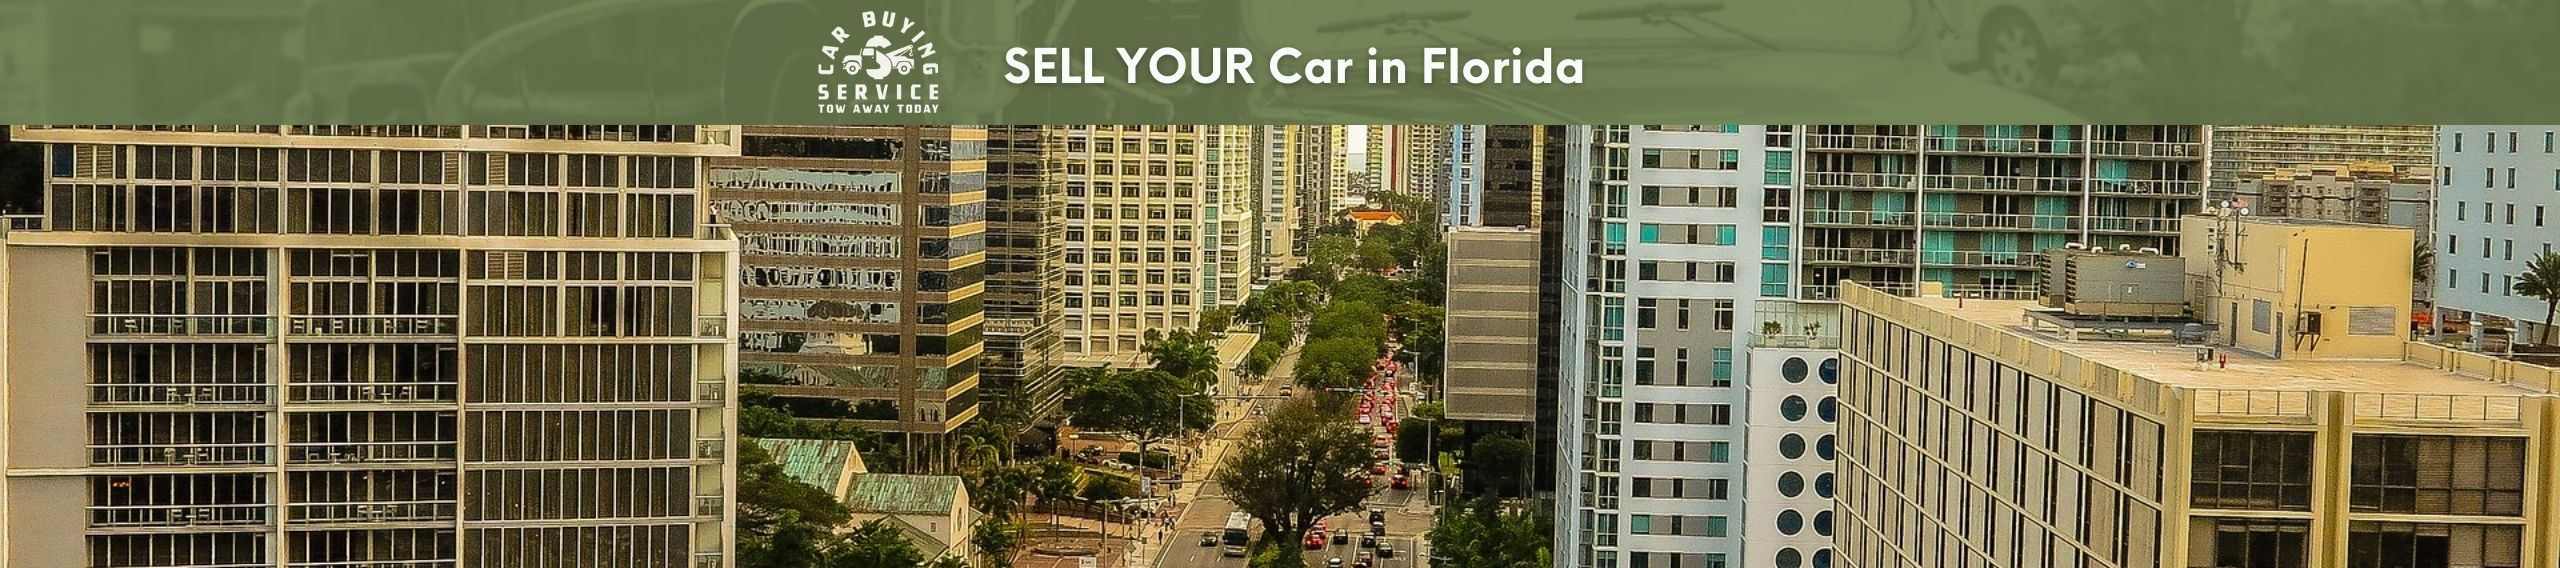 selling cars in Florida